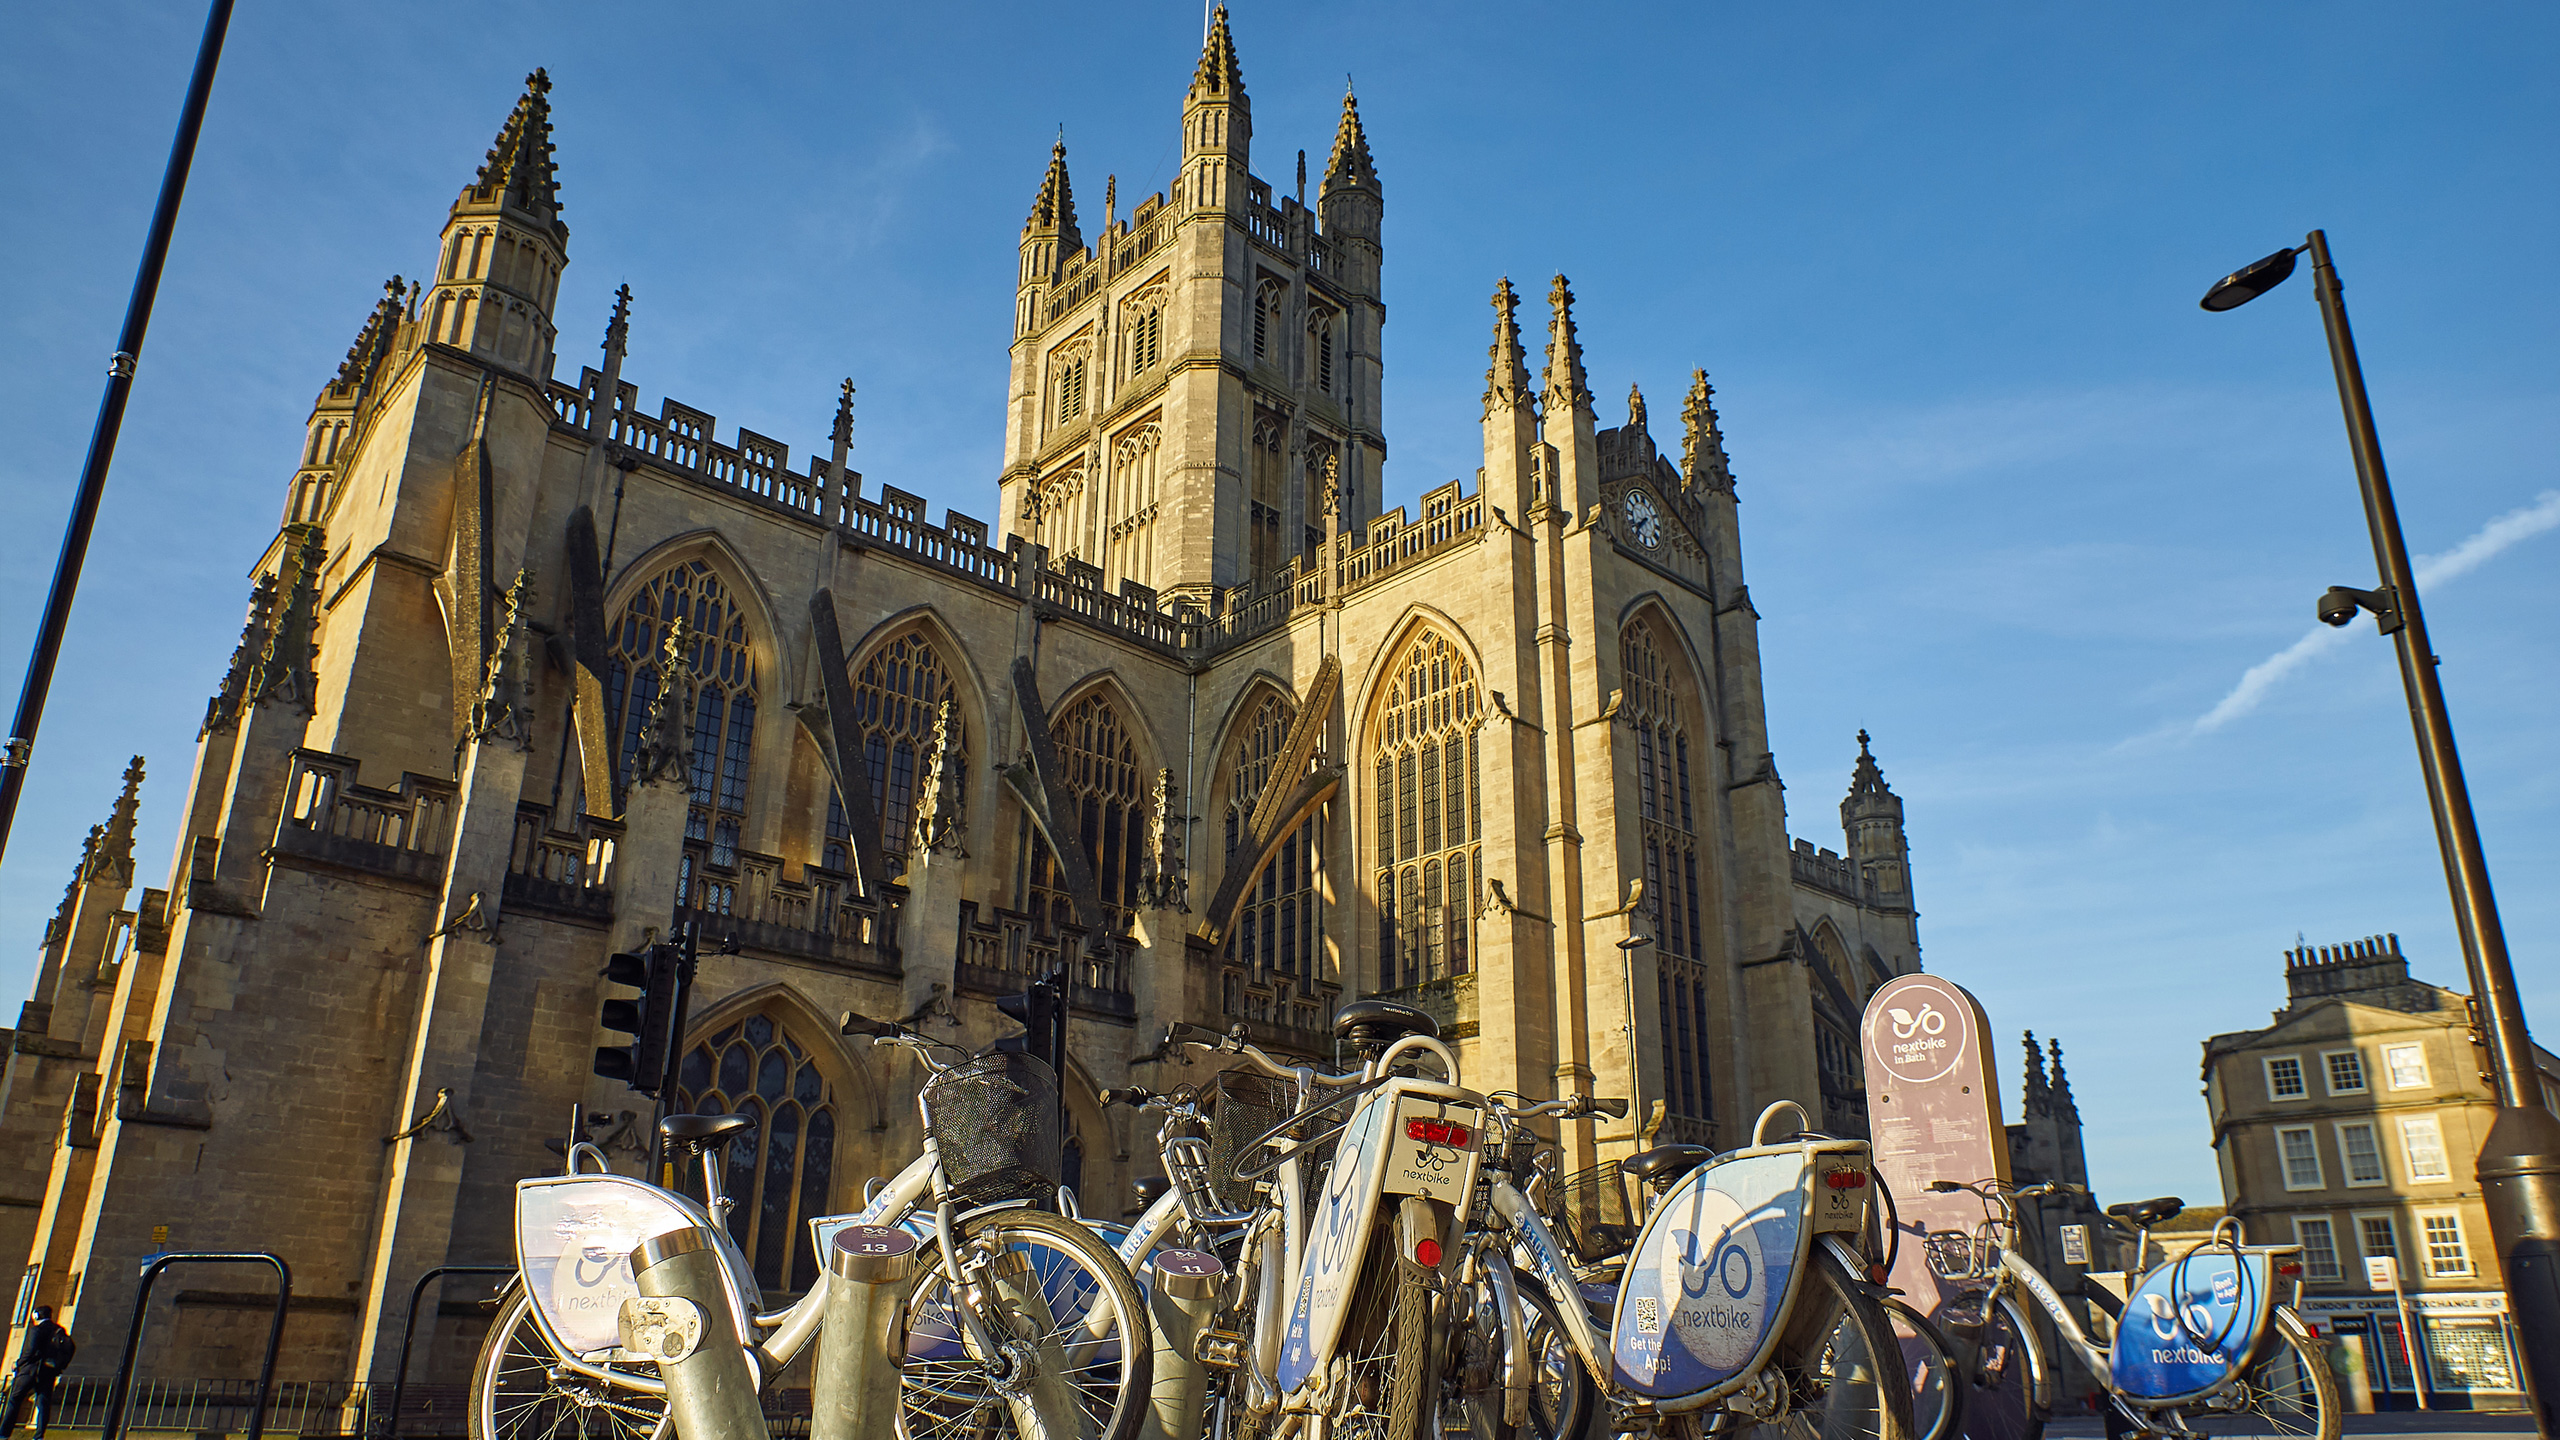 Bicycles in front of Bath Abbey